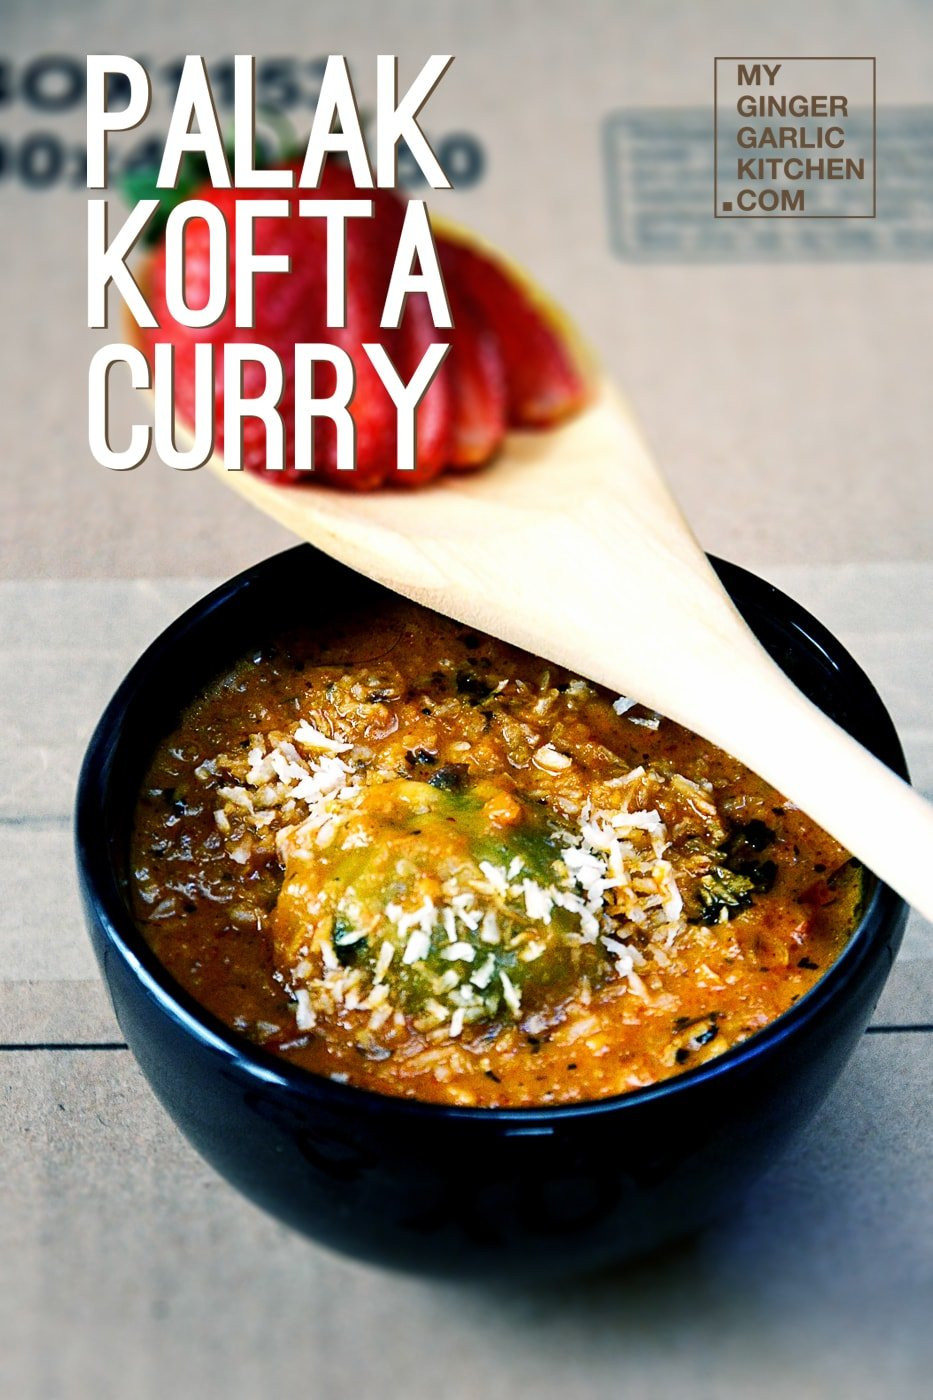 Image of Palak Kofta Curry – Spinach Kofta Curry Recipe – Fried Spinach Dumplings in a Creamy Tomato Sauce